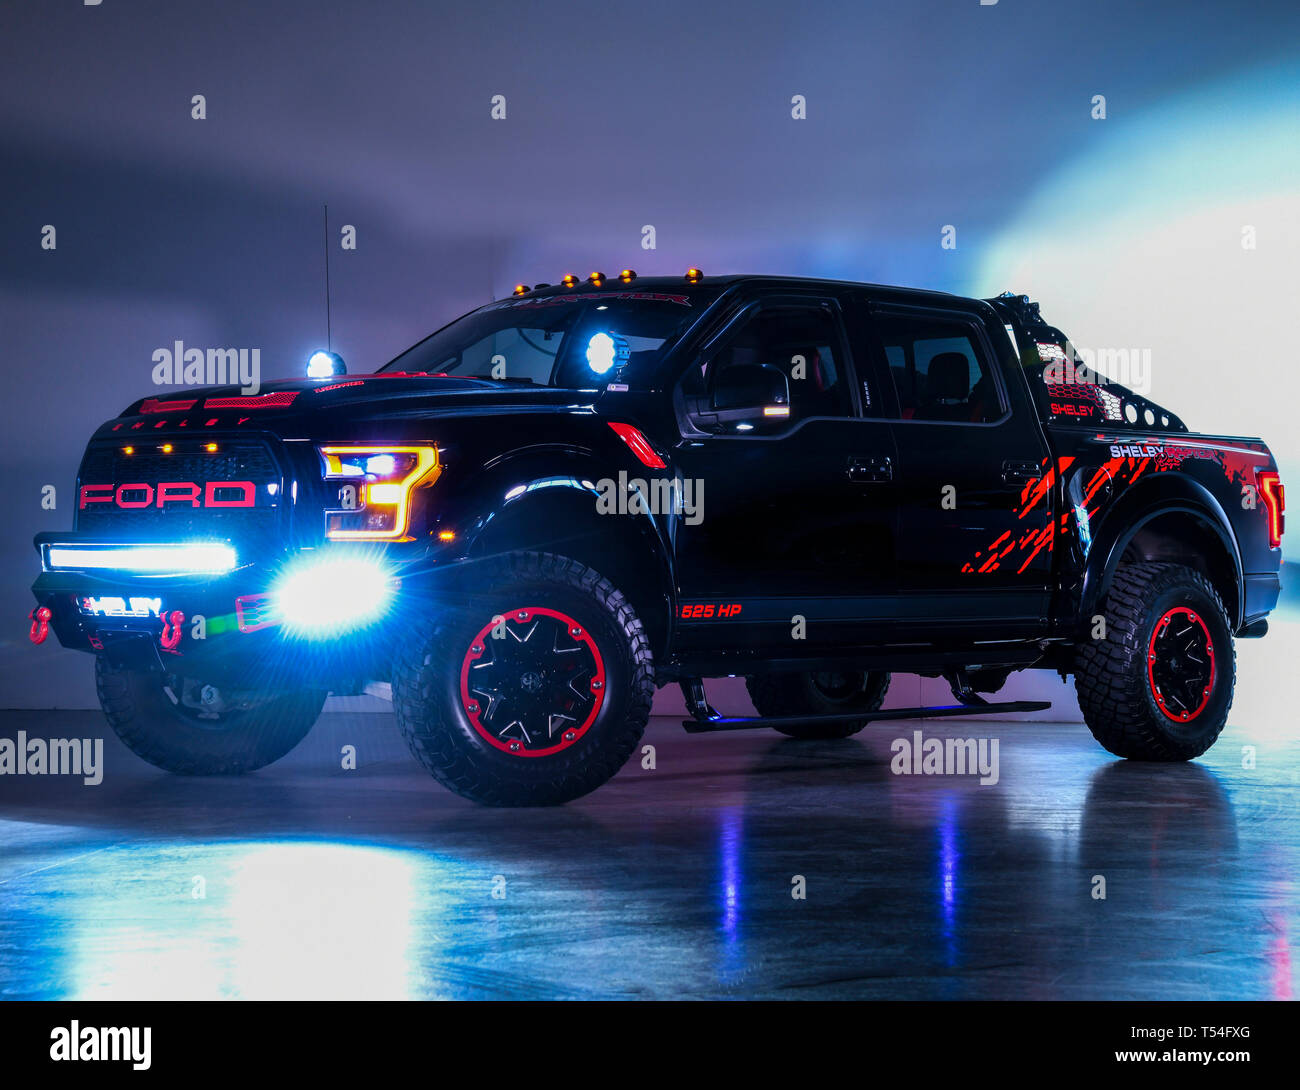 April 20, 2019: 2018 Ford F-150 SHELBY Raptor Baja 525HP